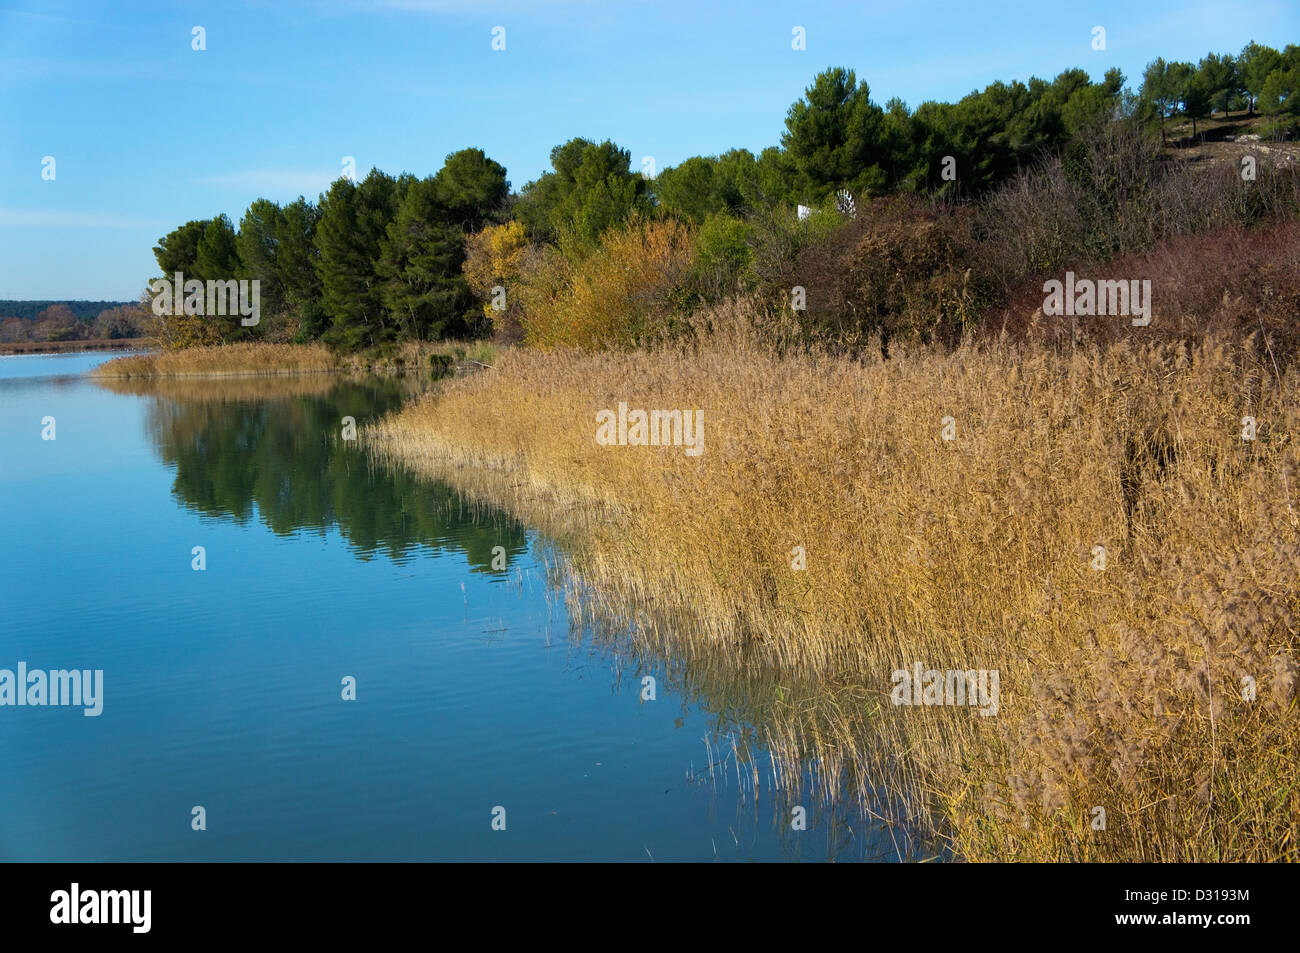 Reeds on a riverbank, Bassin du Realtor, France - Stock Image